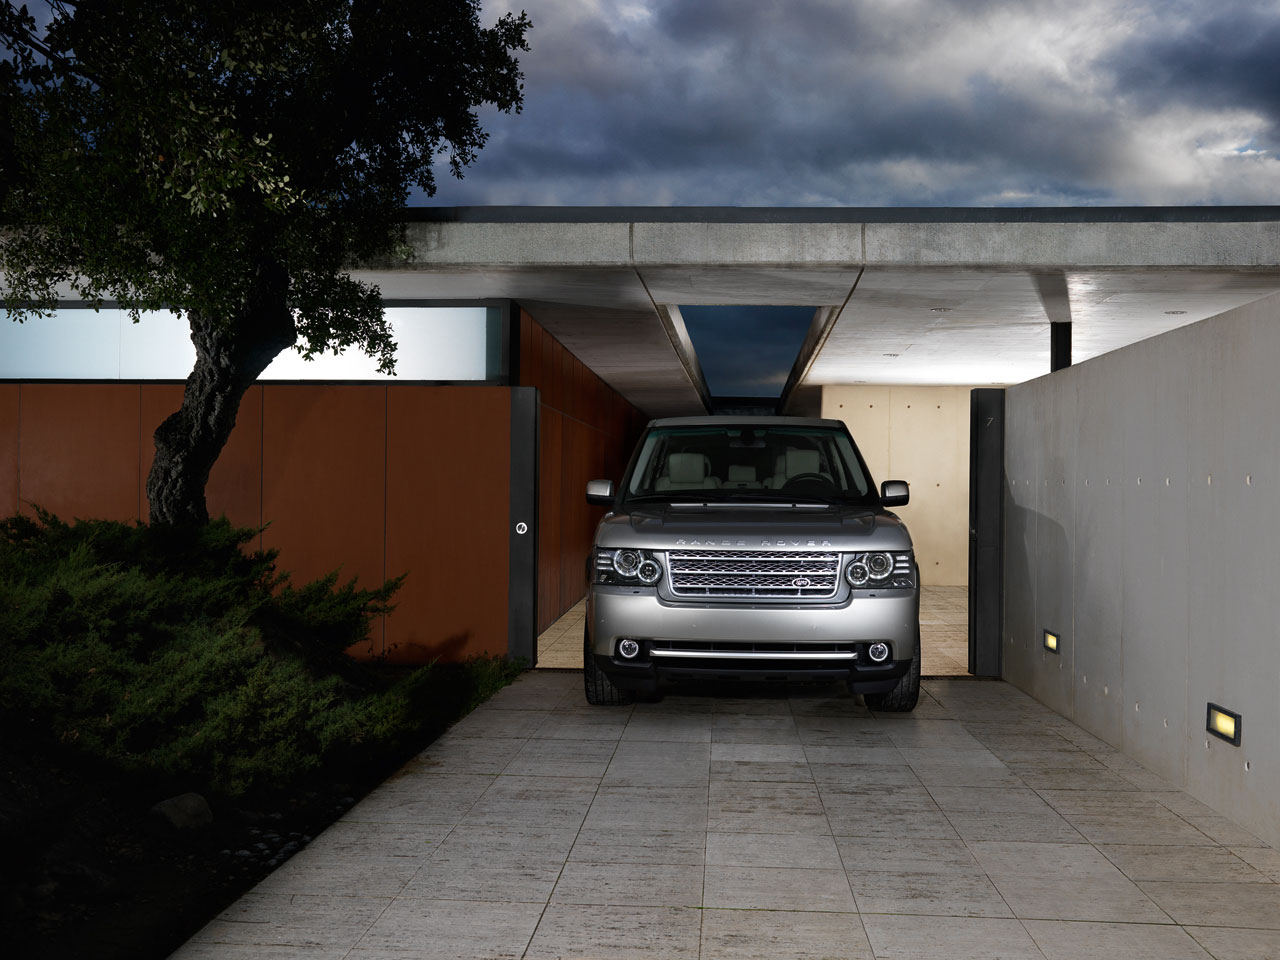 ���� 2010 ������� 02-2010-range-rover-press.jpg